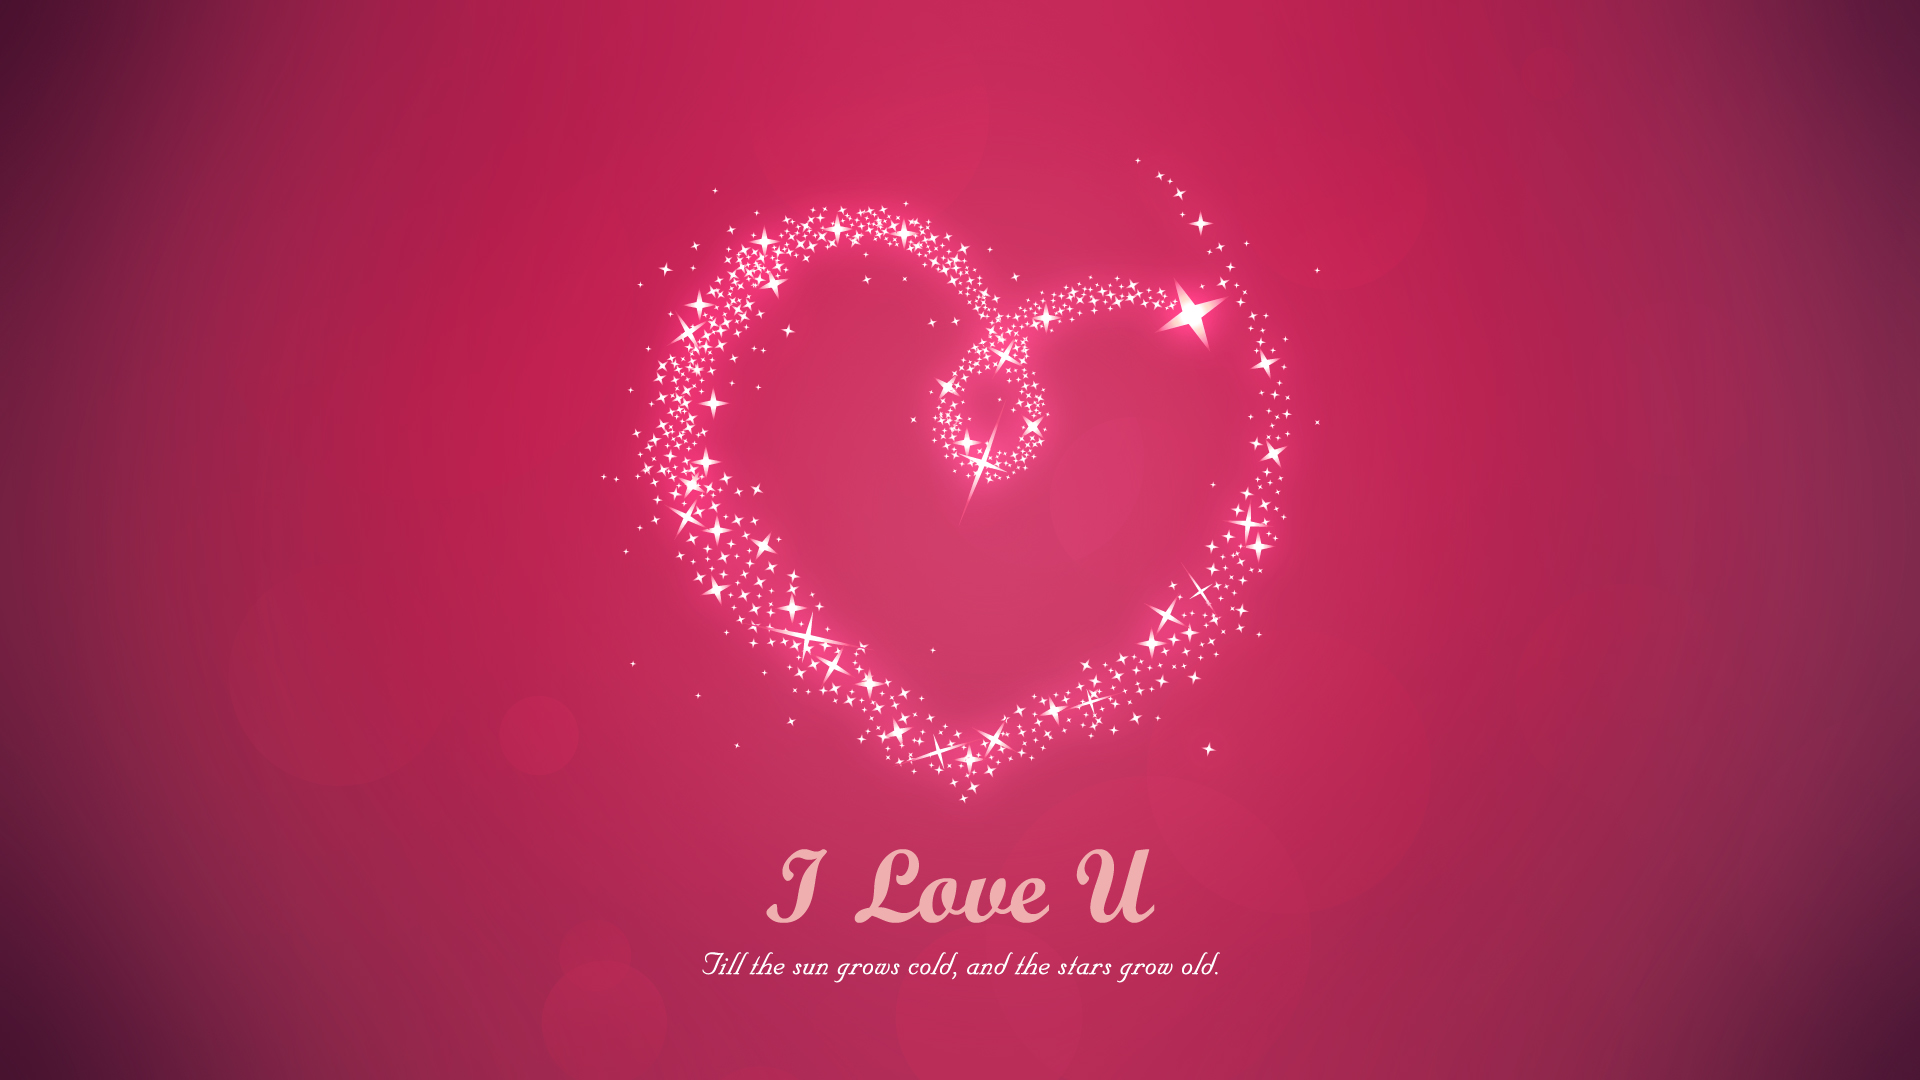 11 Love Inspired Wallpapers